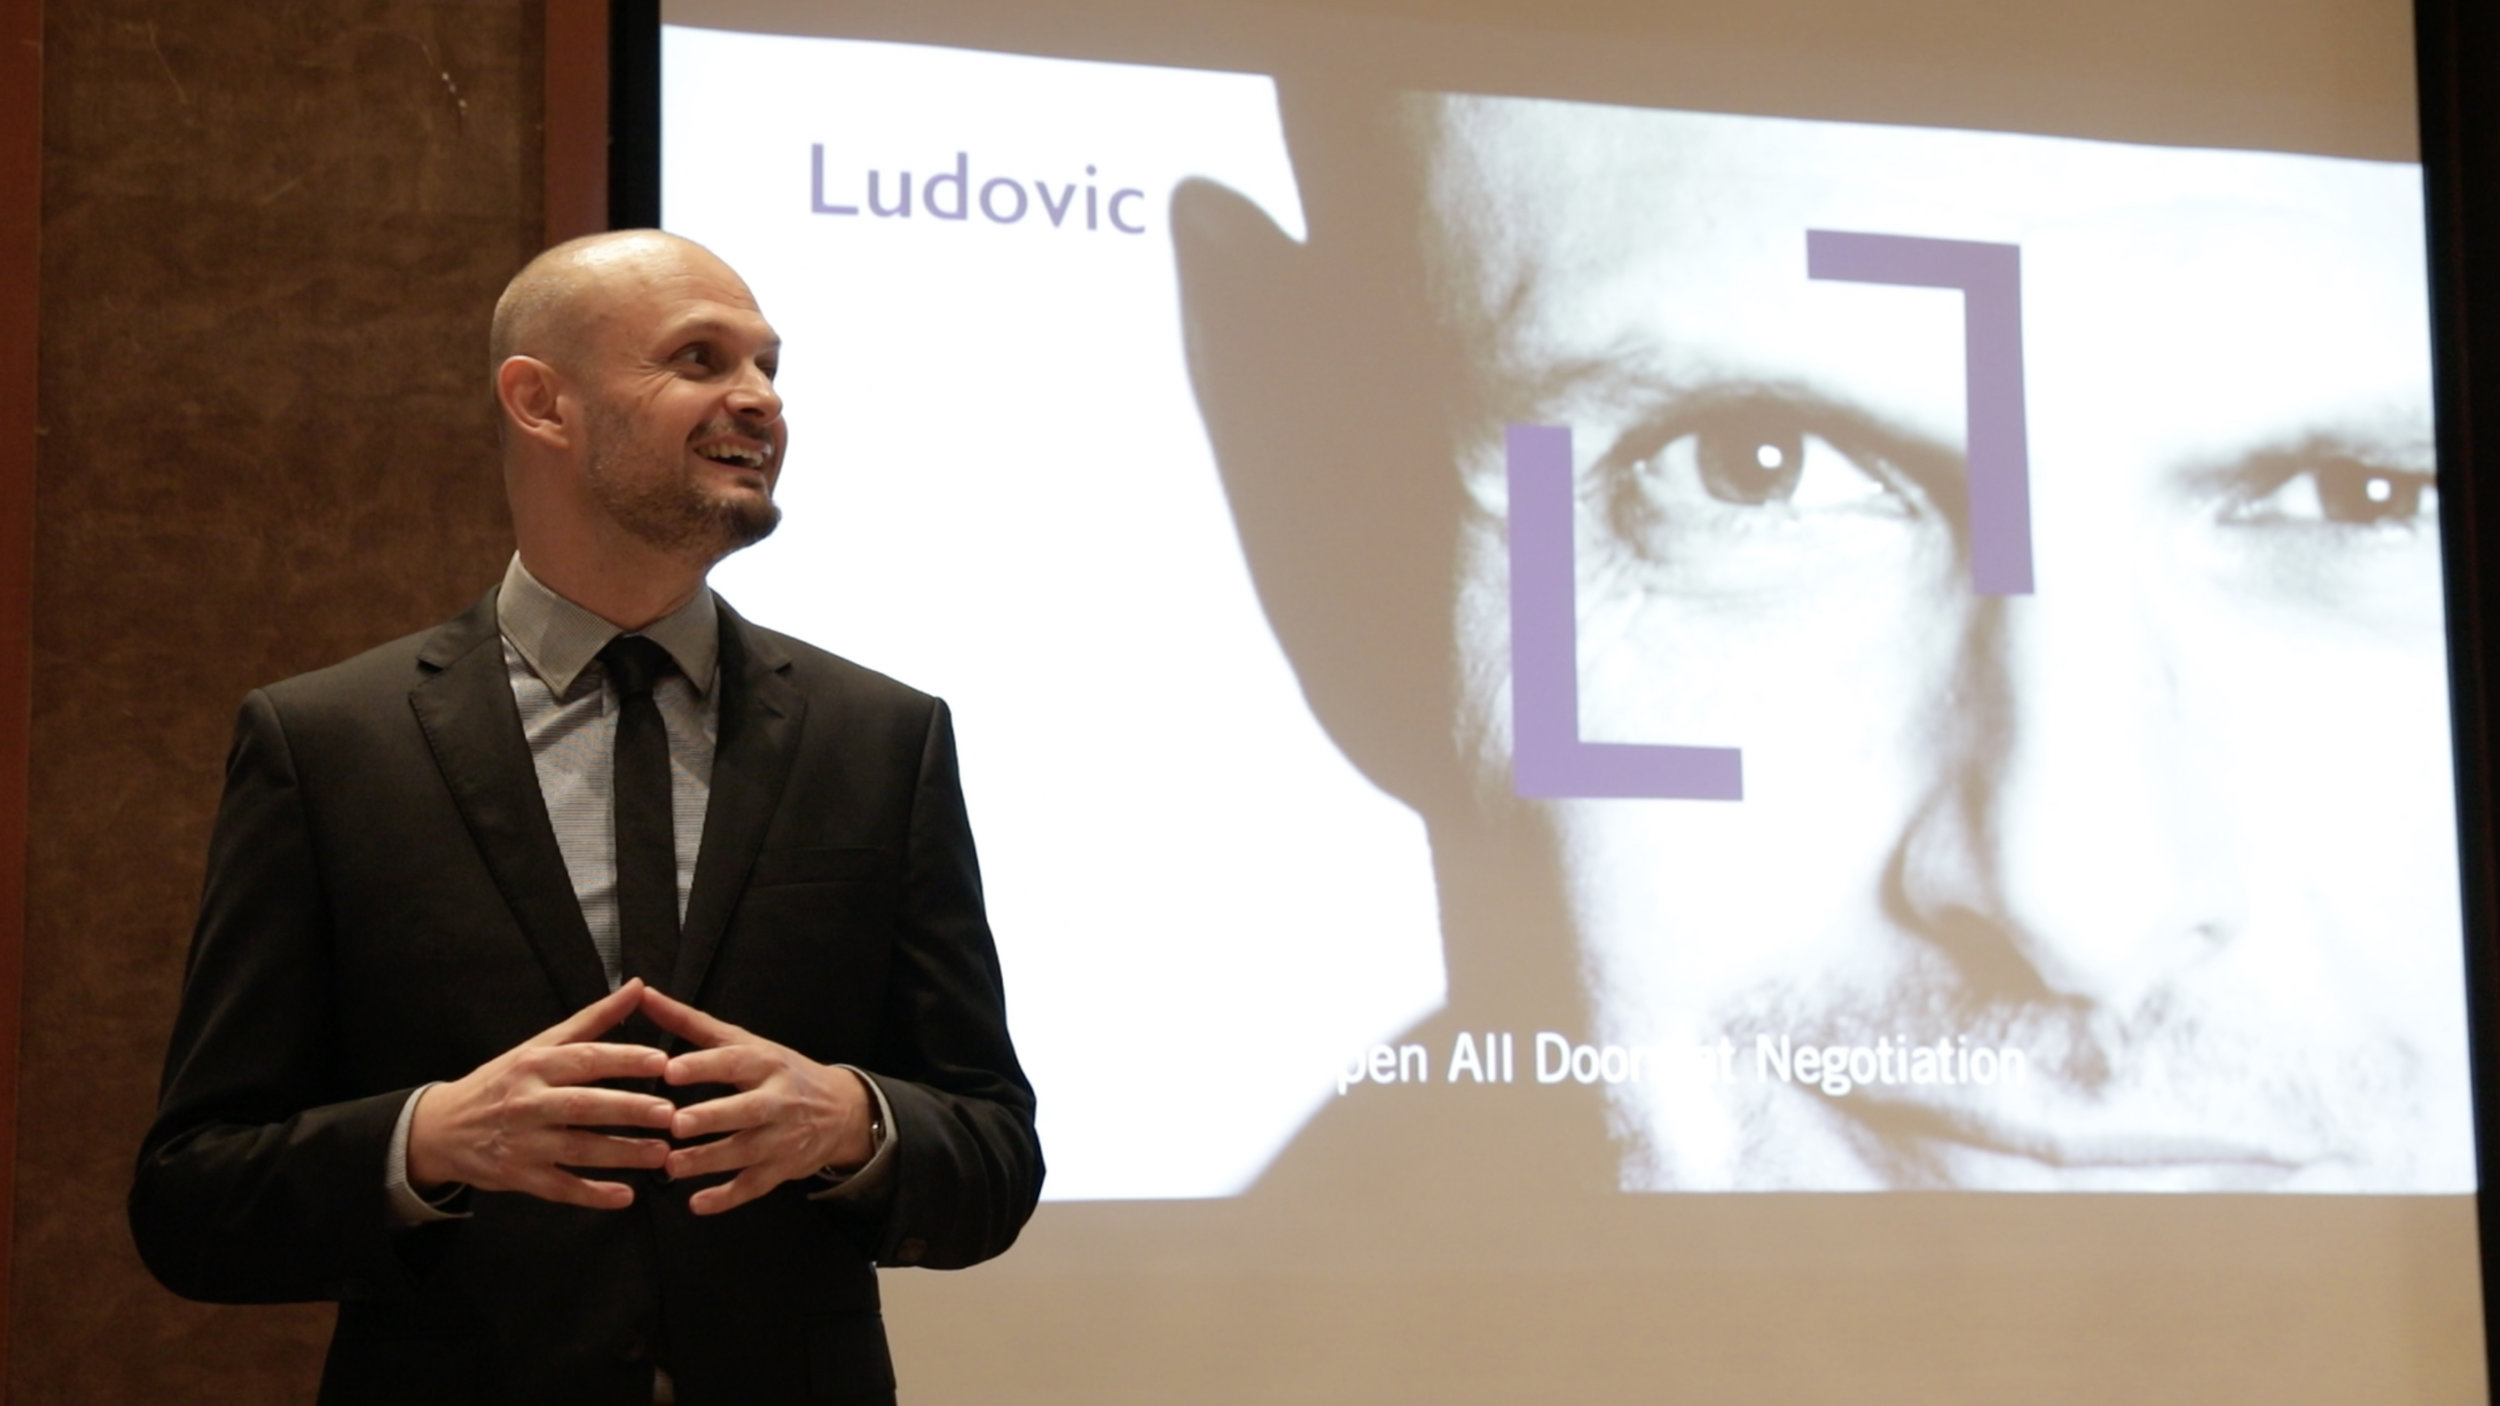 Ludovic Tendron on stage giving speaking engagement on negotiation